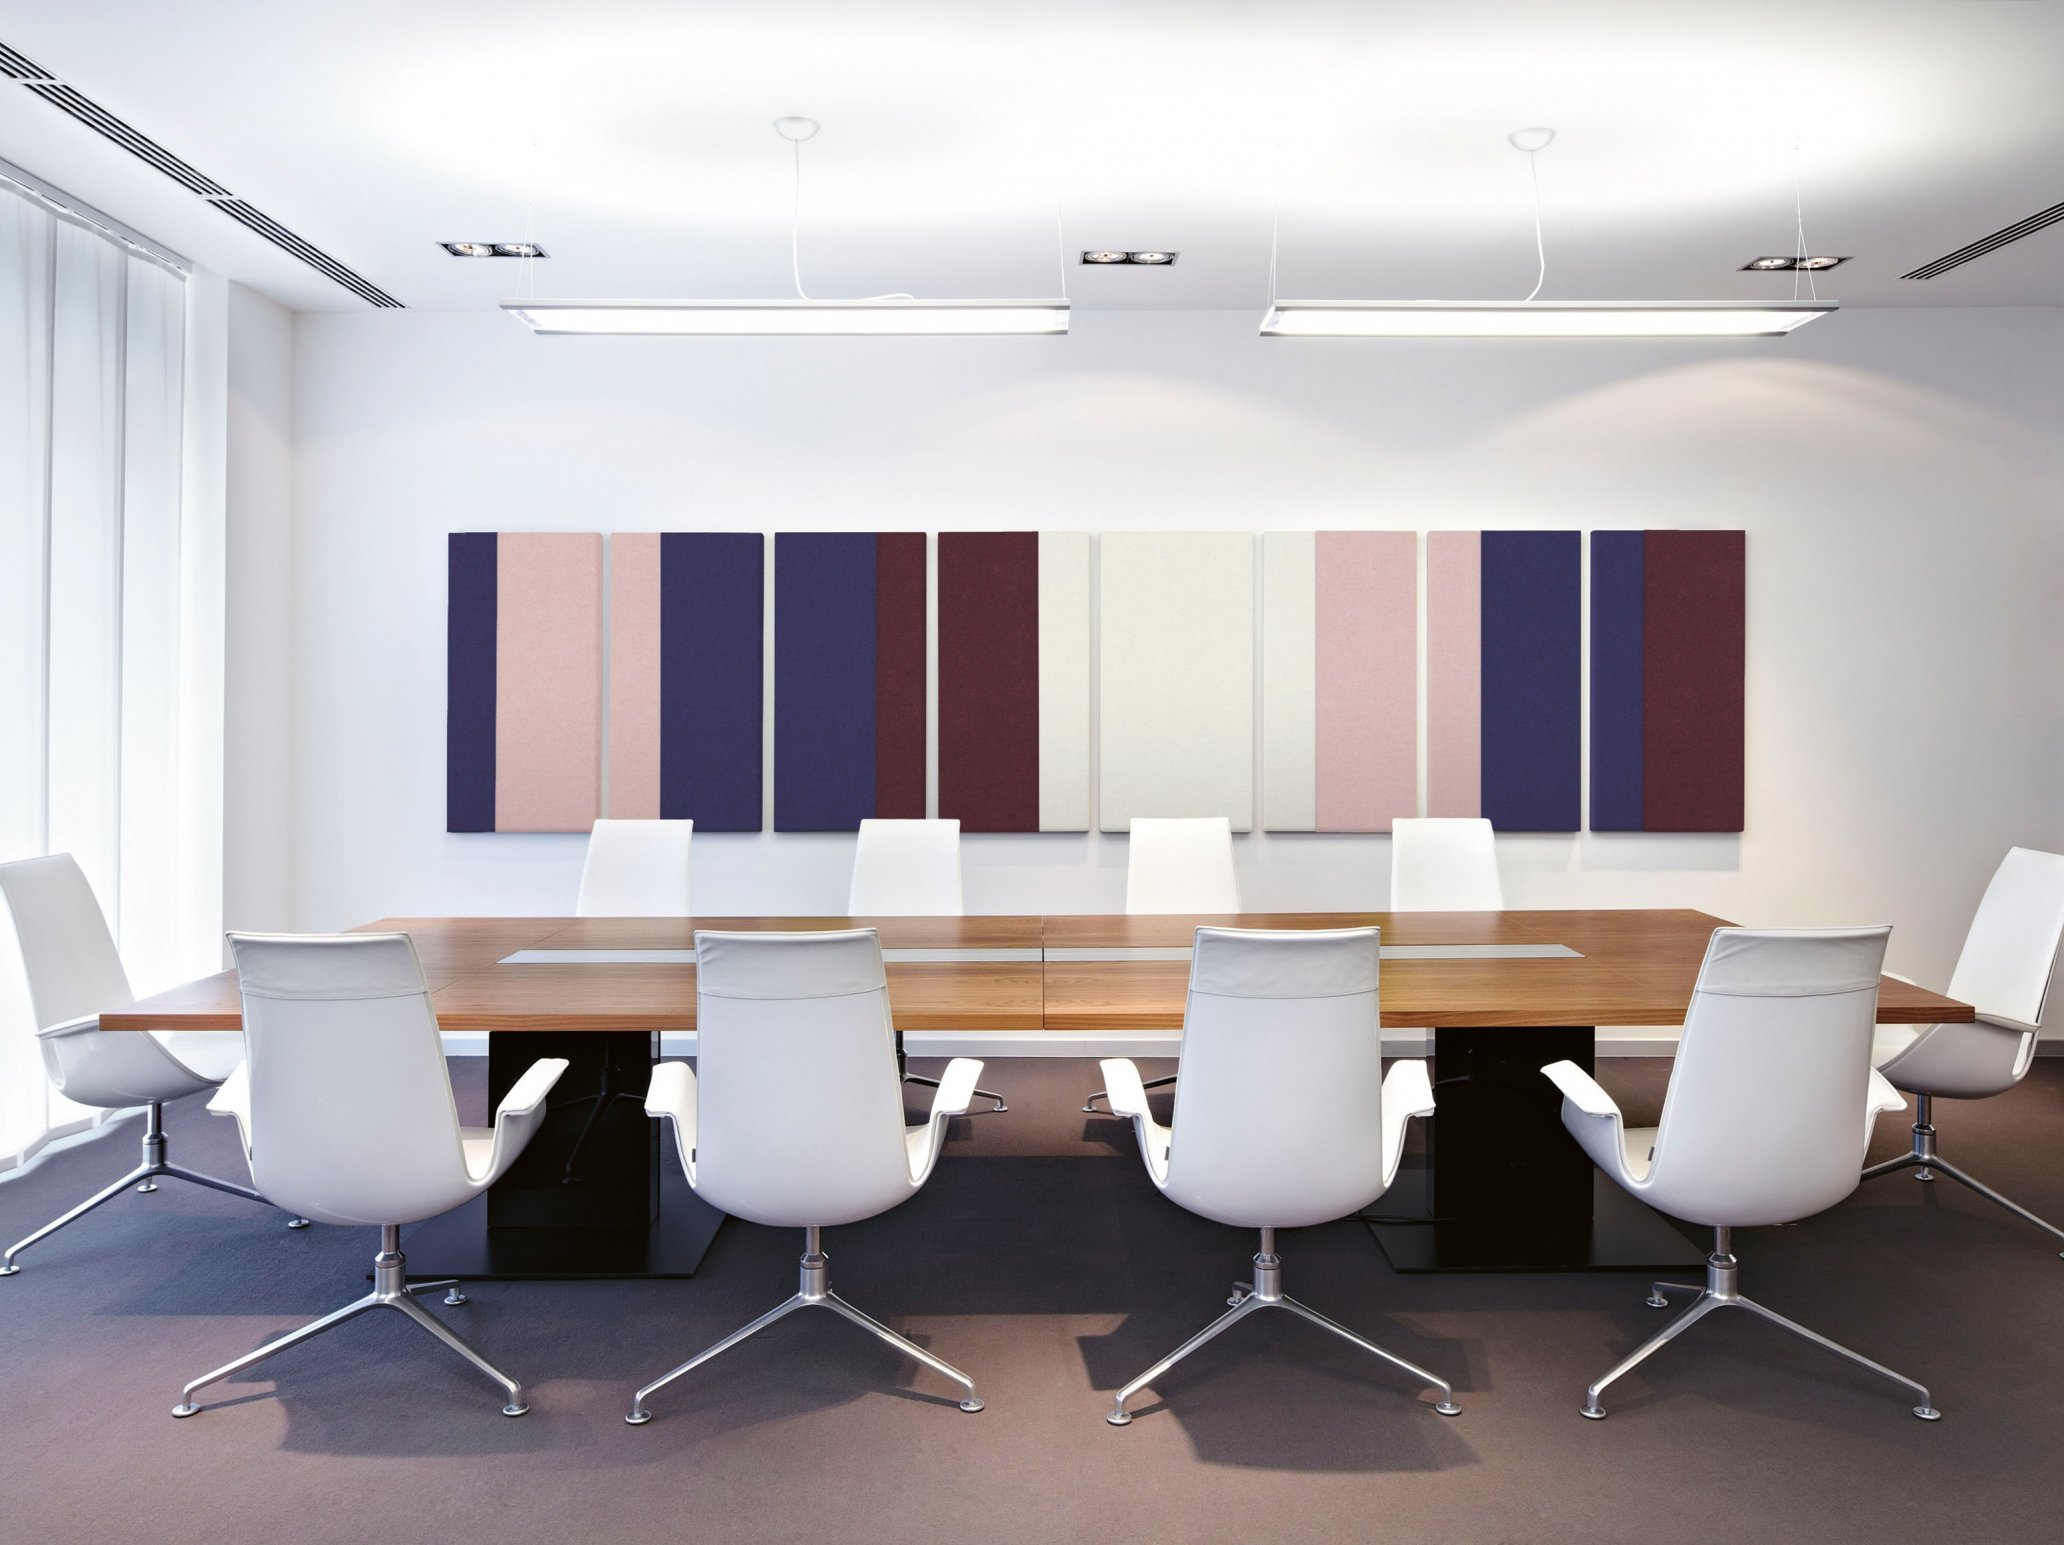 Optimum Acoustics in the Office conference room